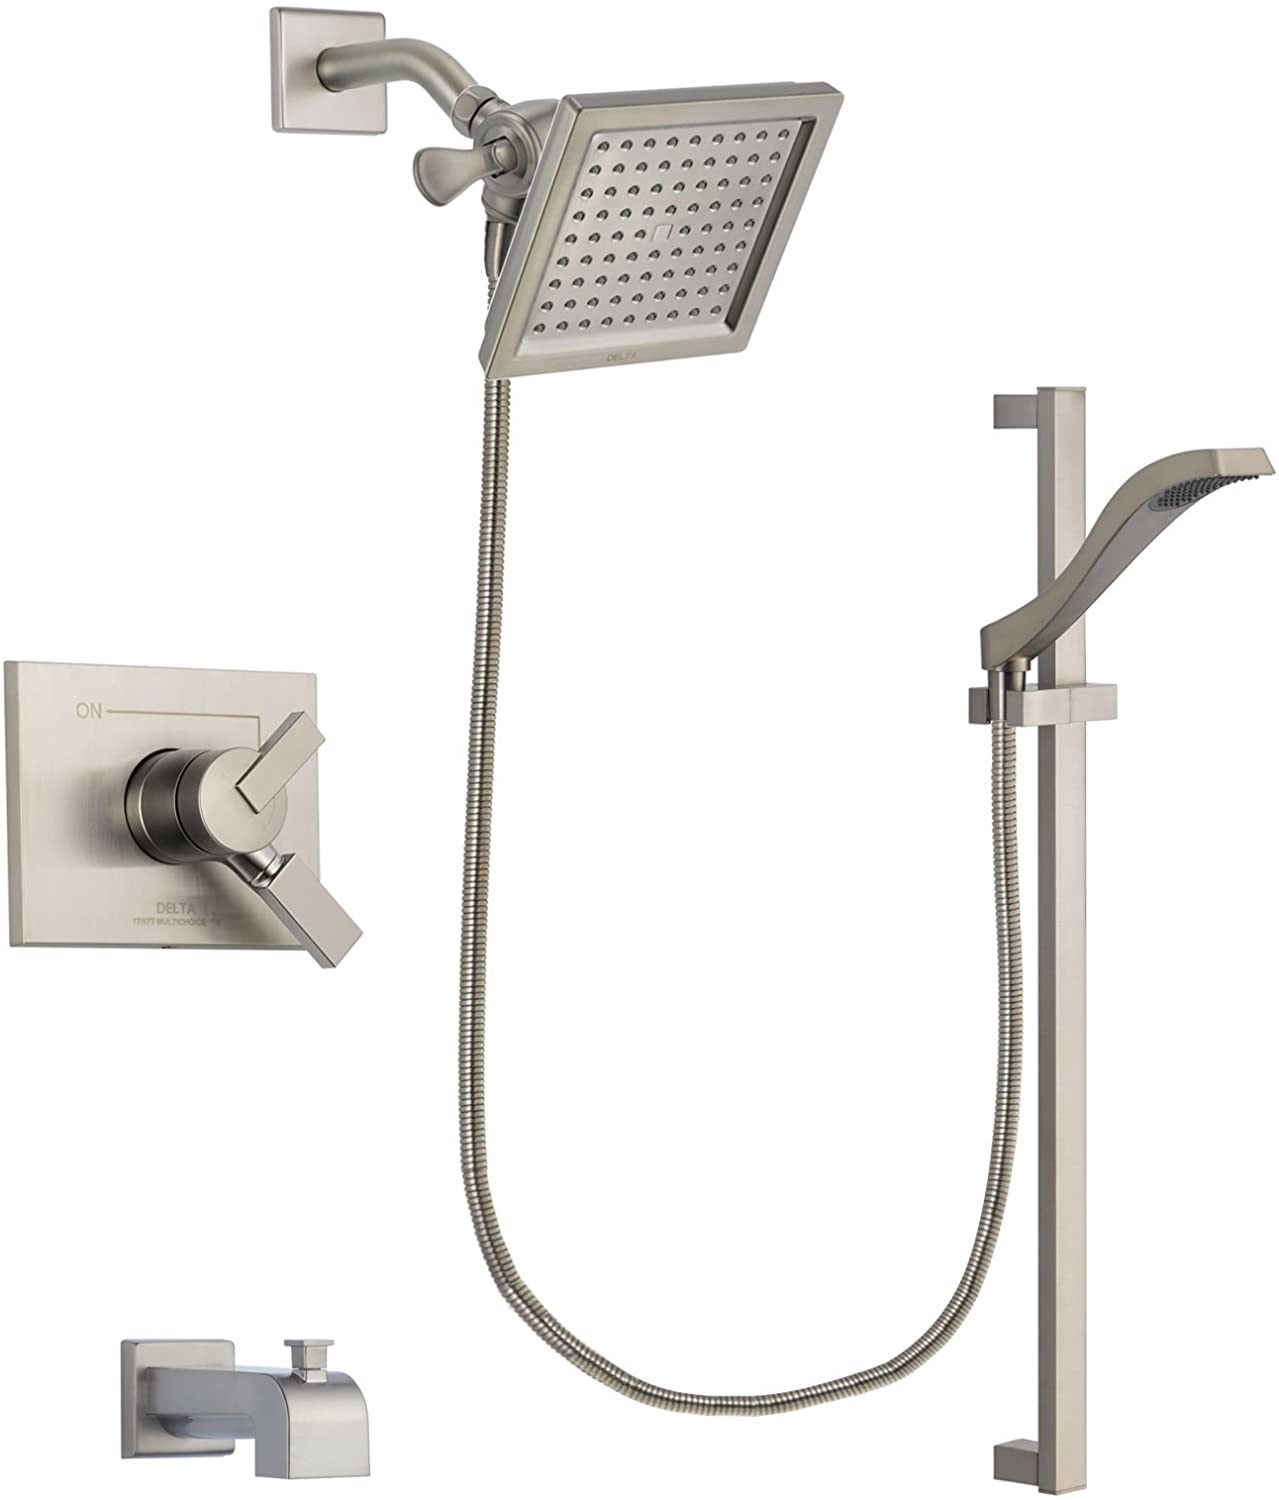 Delta Vero Stainless Steel Dual Control Tub and Shower Faucet System Package with 6.5-inch Square Rain Showerhead and Handheld Shower with Slide Bar Includes Rough-in Valve and Tub Spout DSP2251V